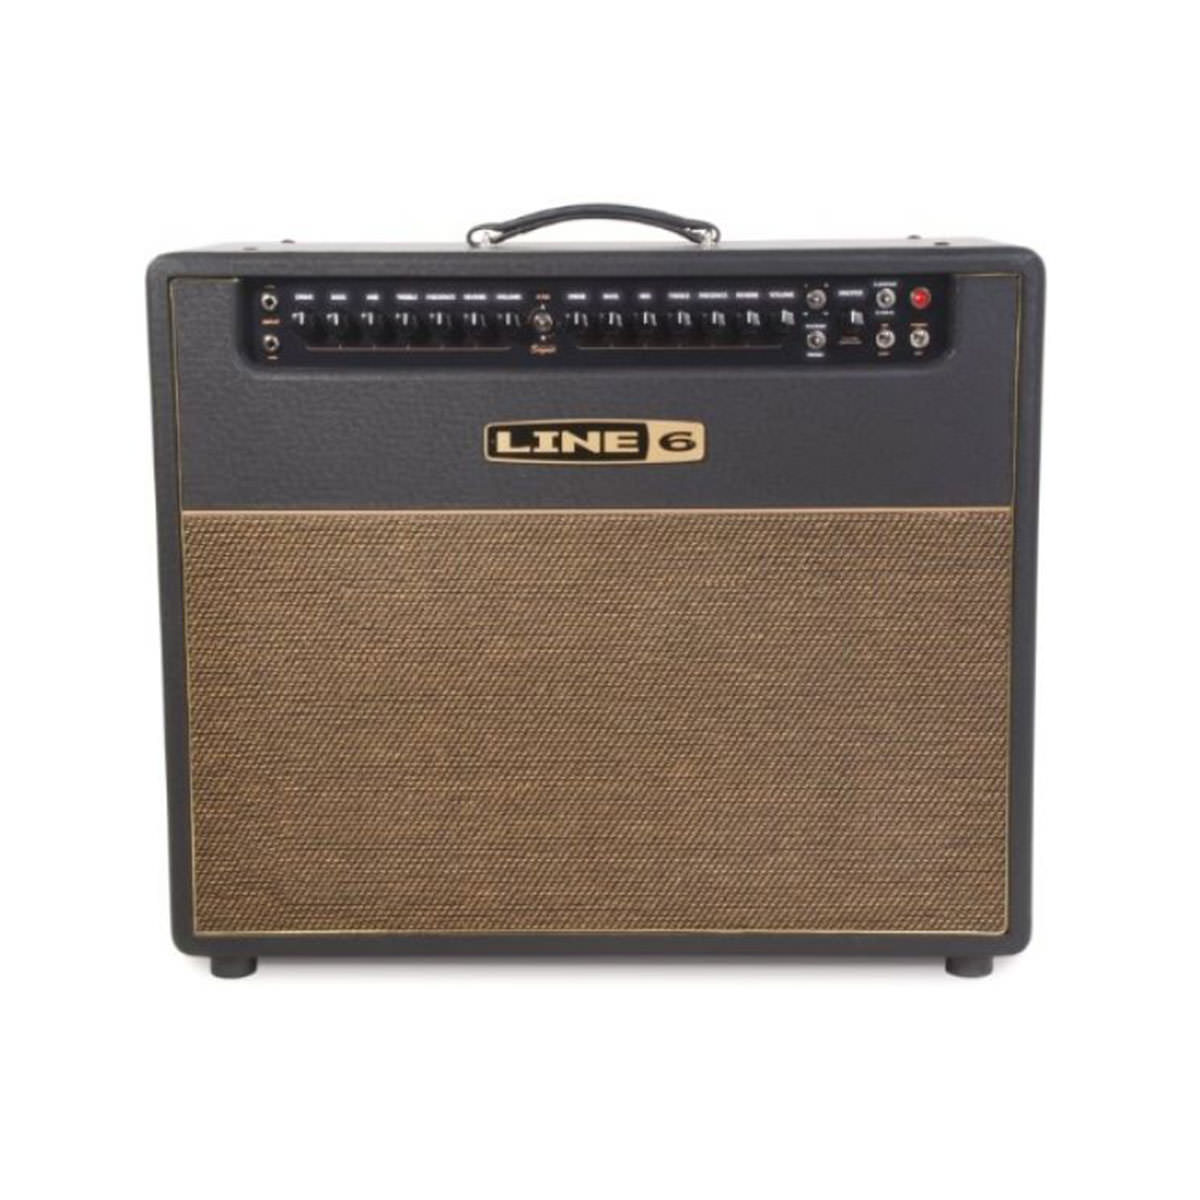 Line 6 DT50 212 Guitar Combo Amp